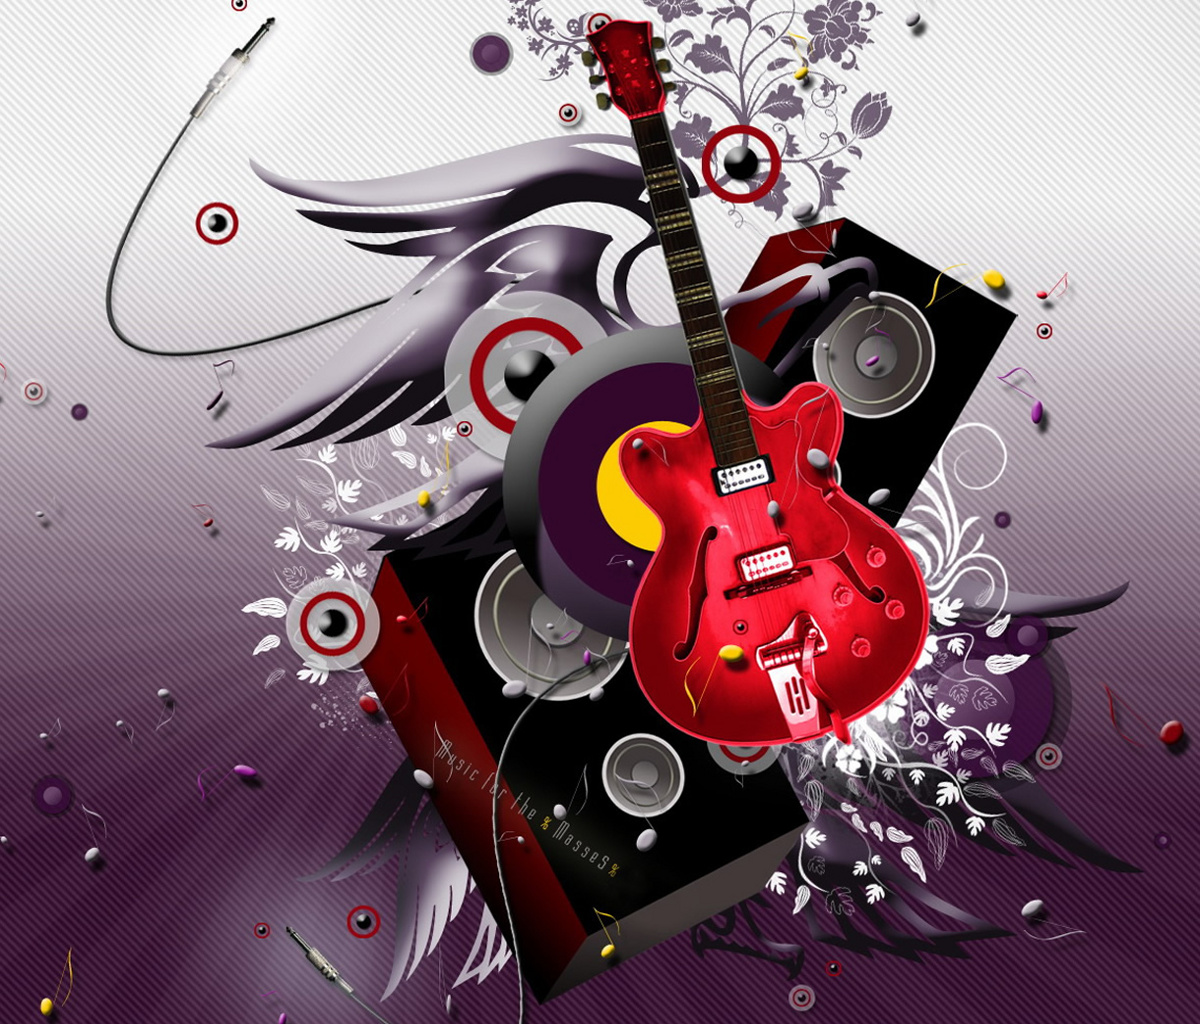 Top Wallpaper Love Guitar - mWalY3  Collection_25597.jpg